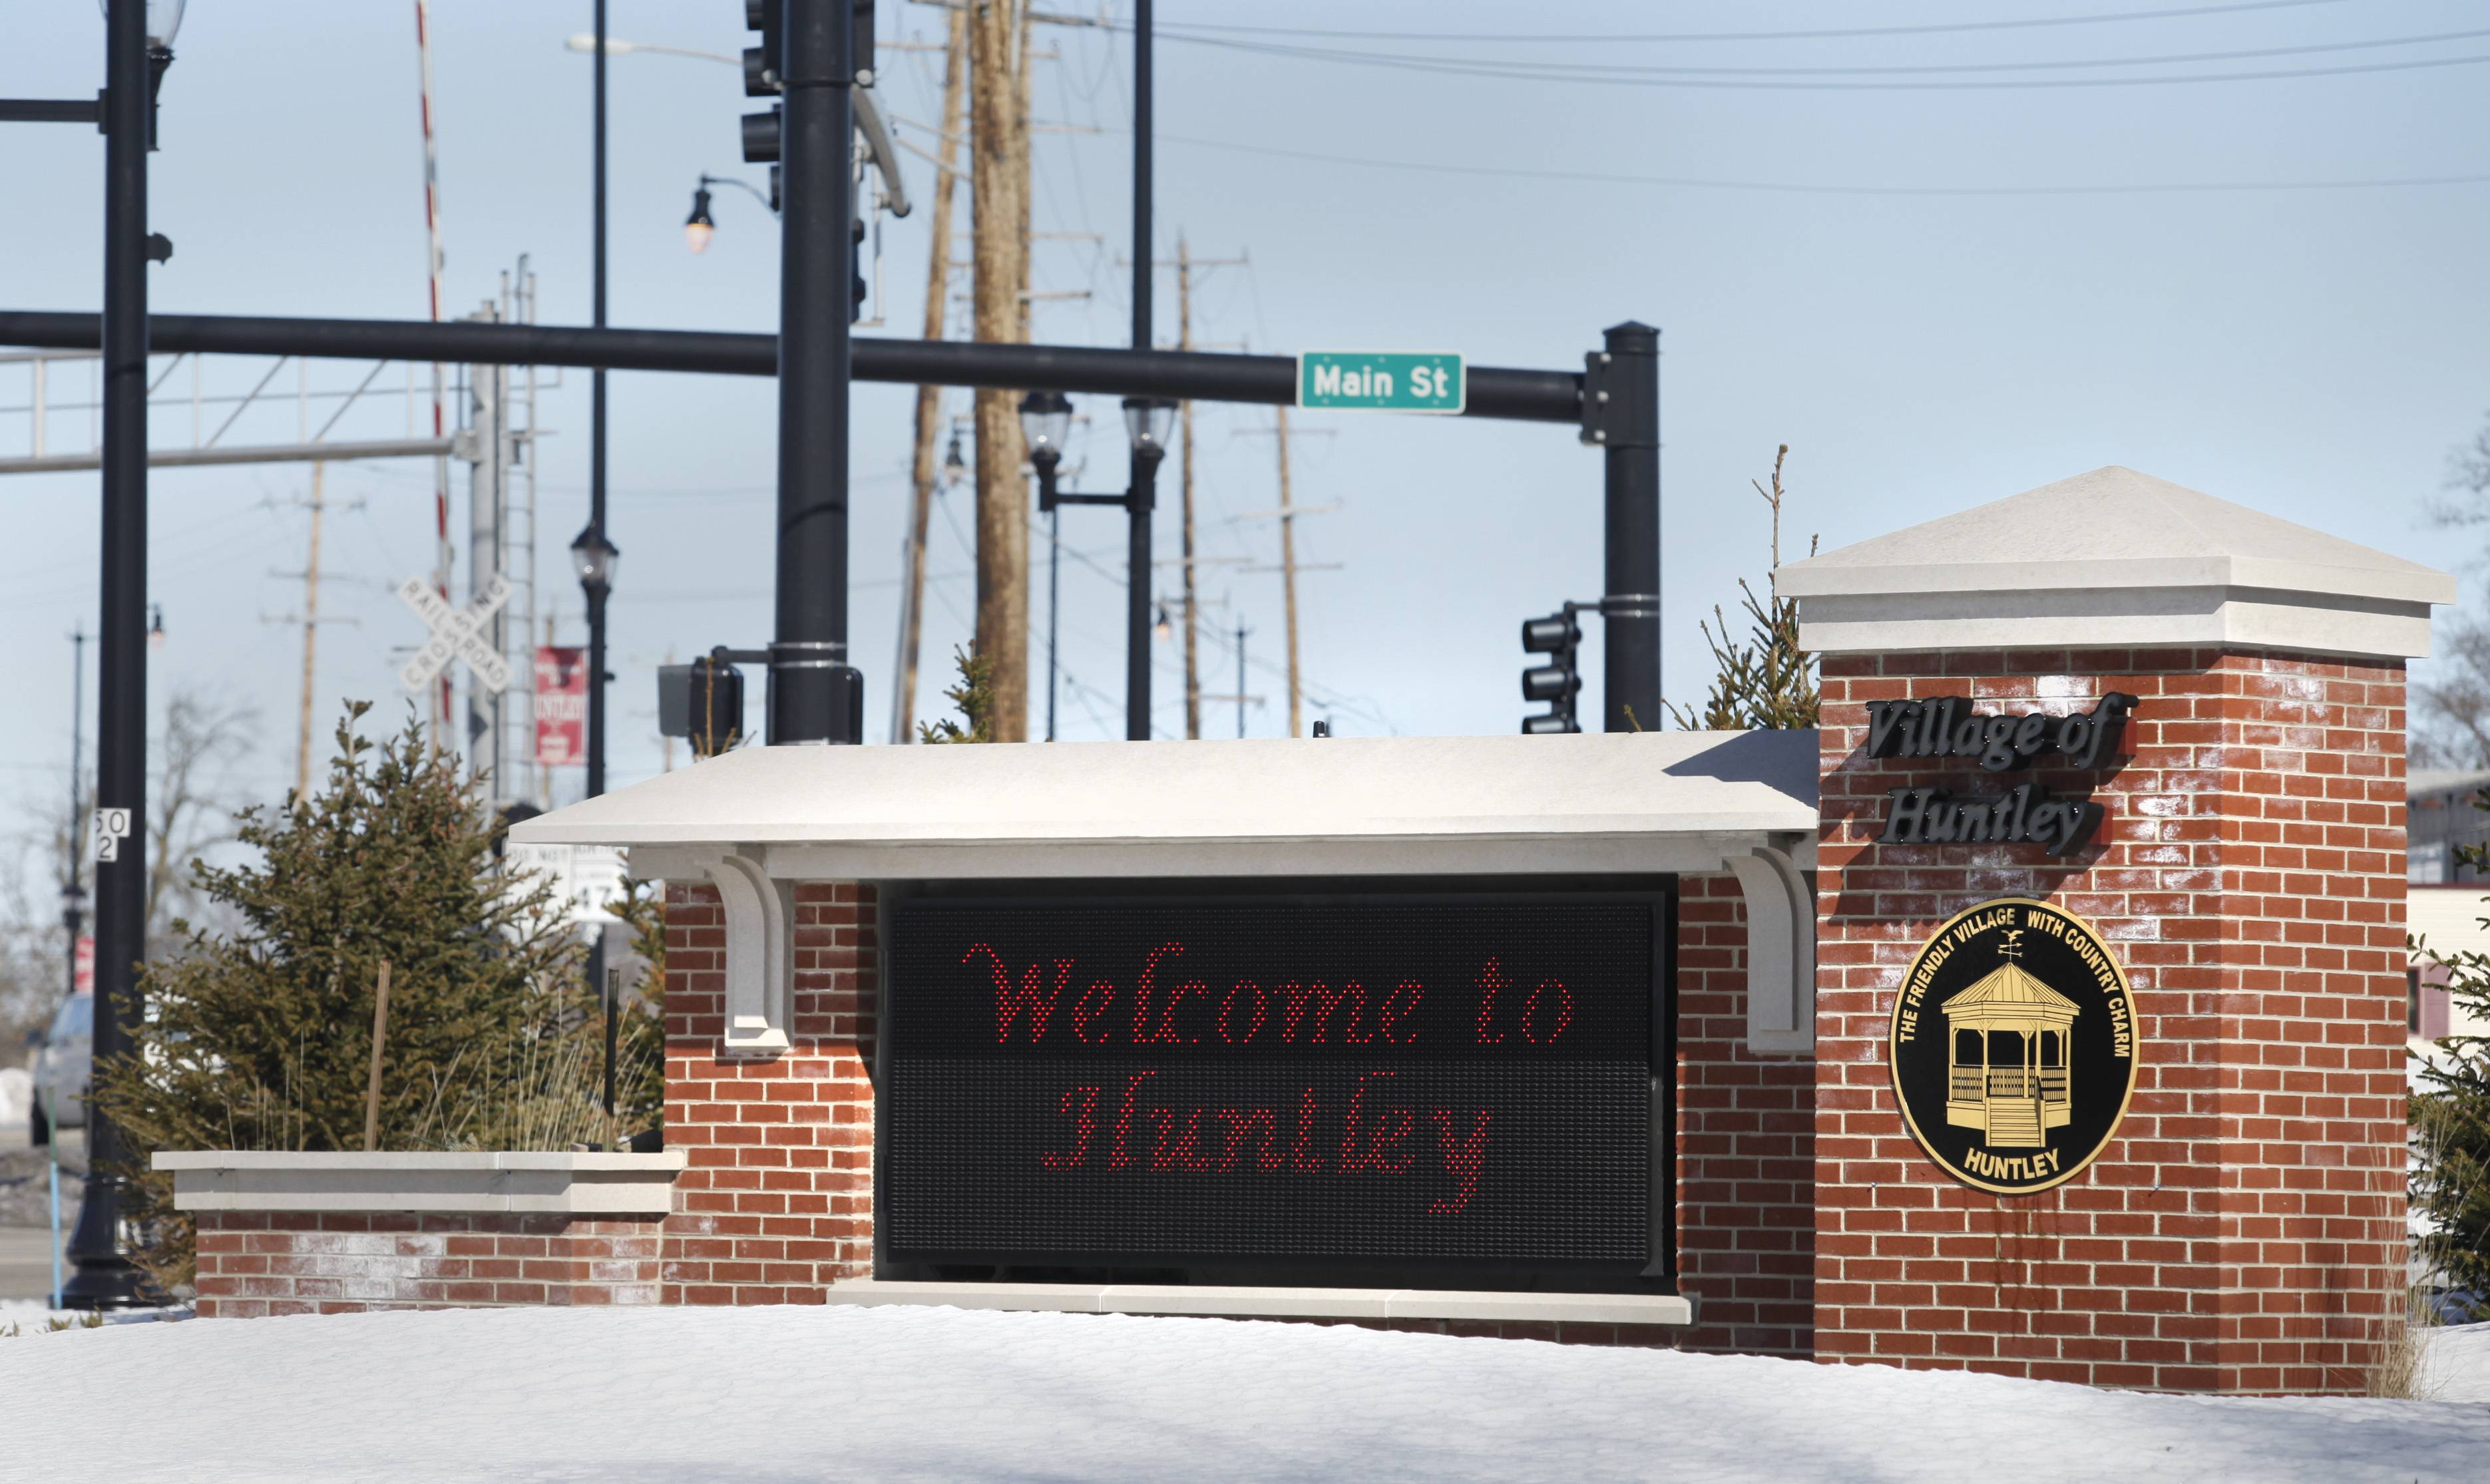 The village of Huntley has changed dramatically in the past decade, and not just with a new welcome sign at Main Street and Route 47. The village ranked No. 1 on NerdWallet.com's list of best places for homeownership in Illinois.